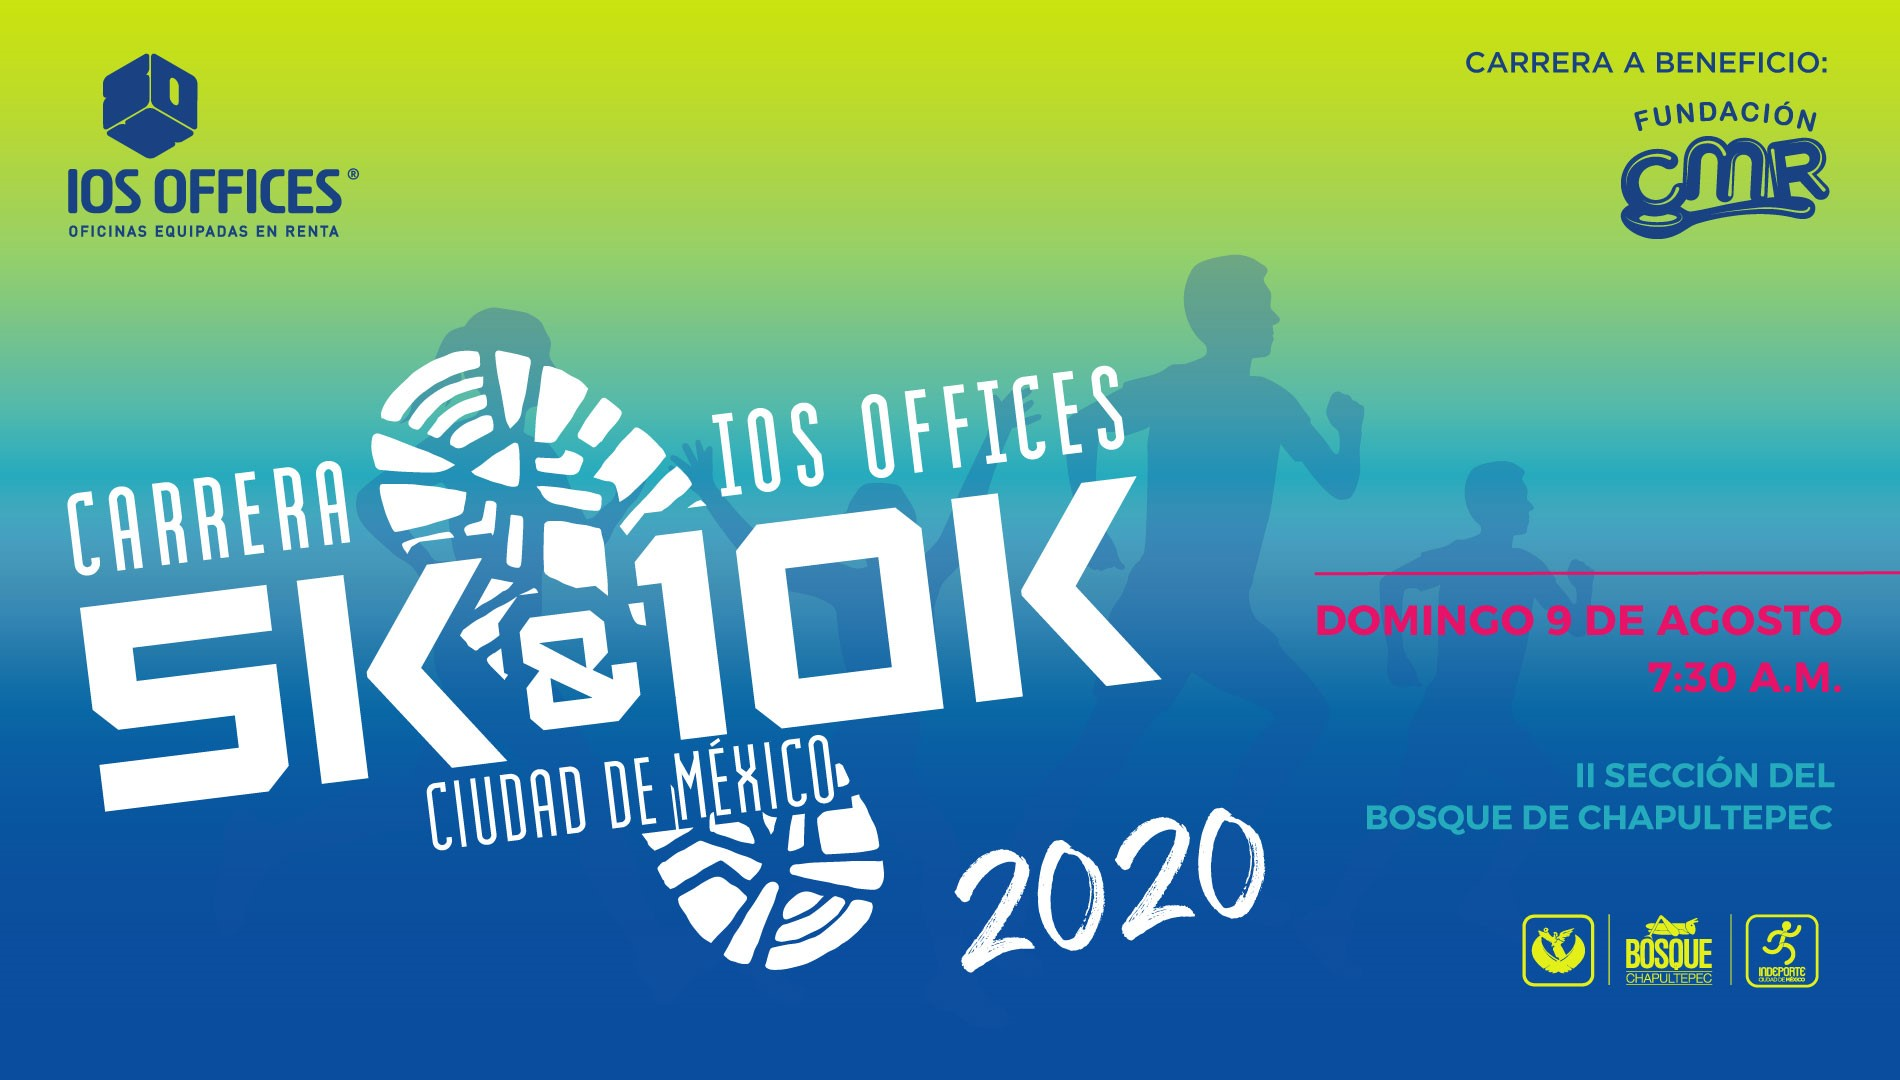 CARRERA IOS OFFICES 5K Y 10K CDMX 2020